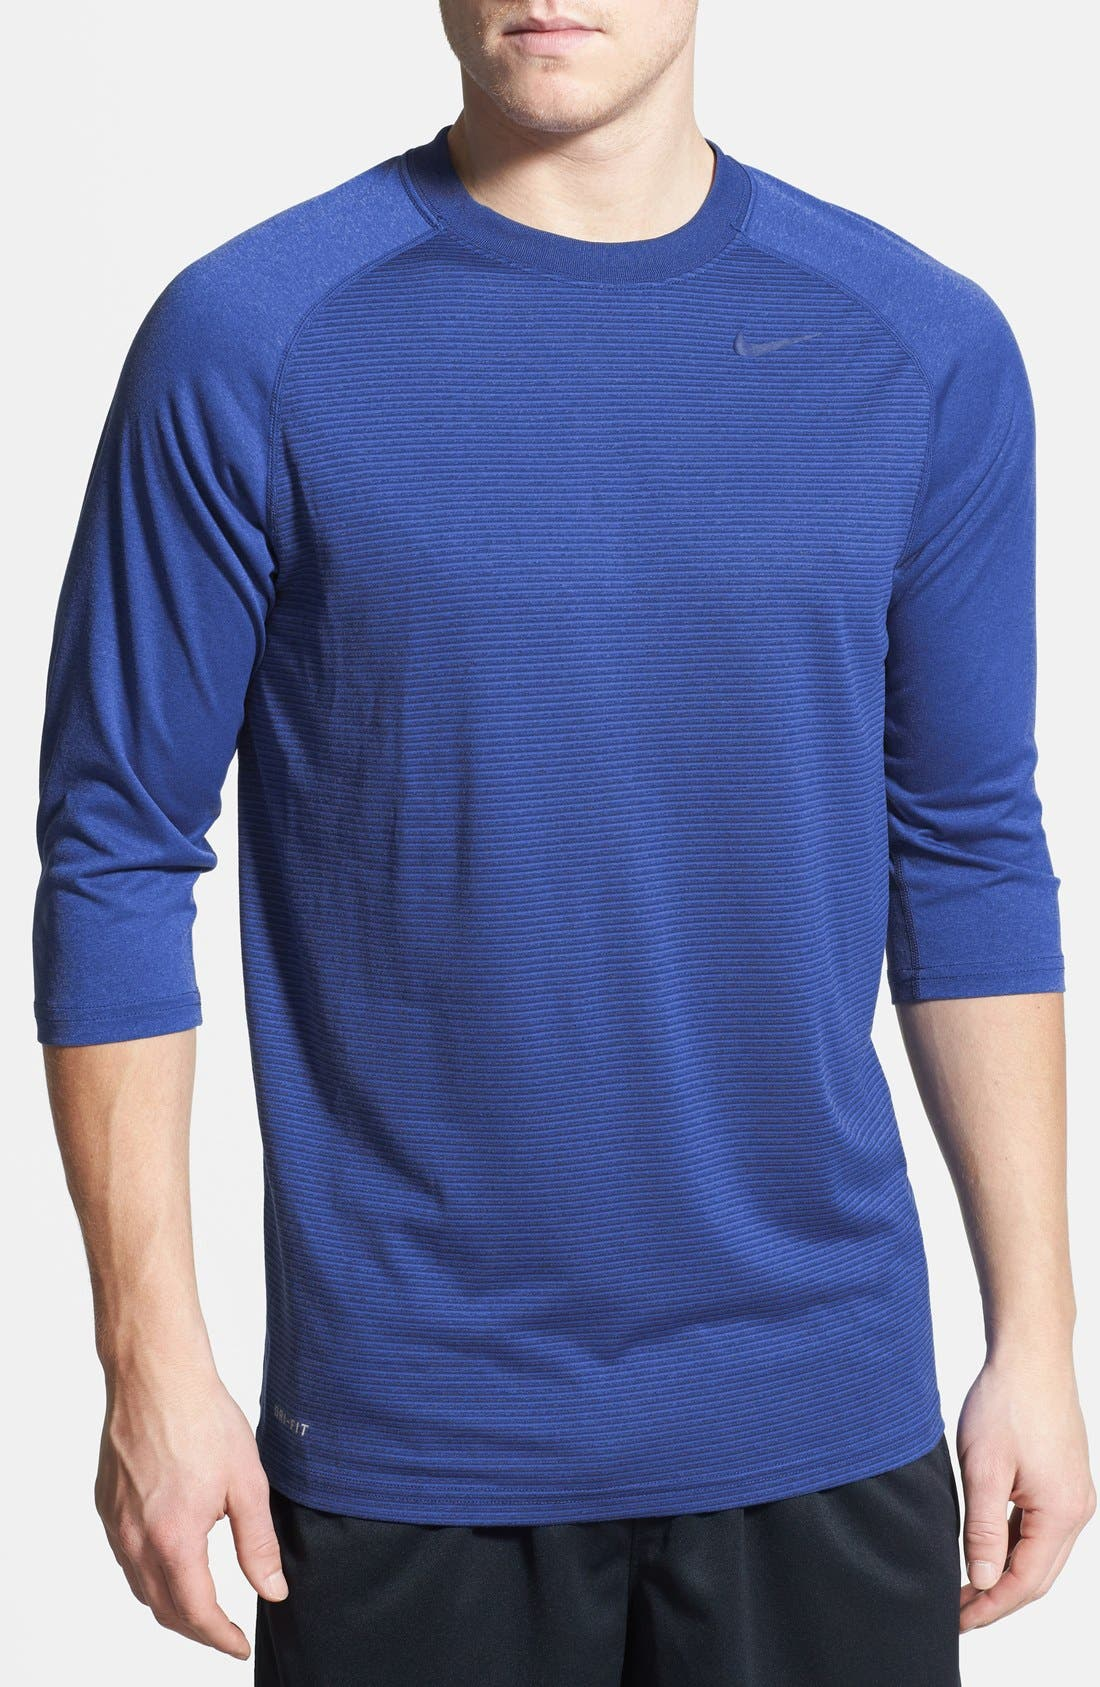 Alternate Image 1 Selected - Nike Dri-FIT Three Quarter Length Raglan Sleeve T-Shirt